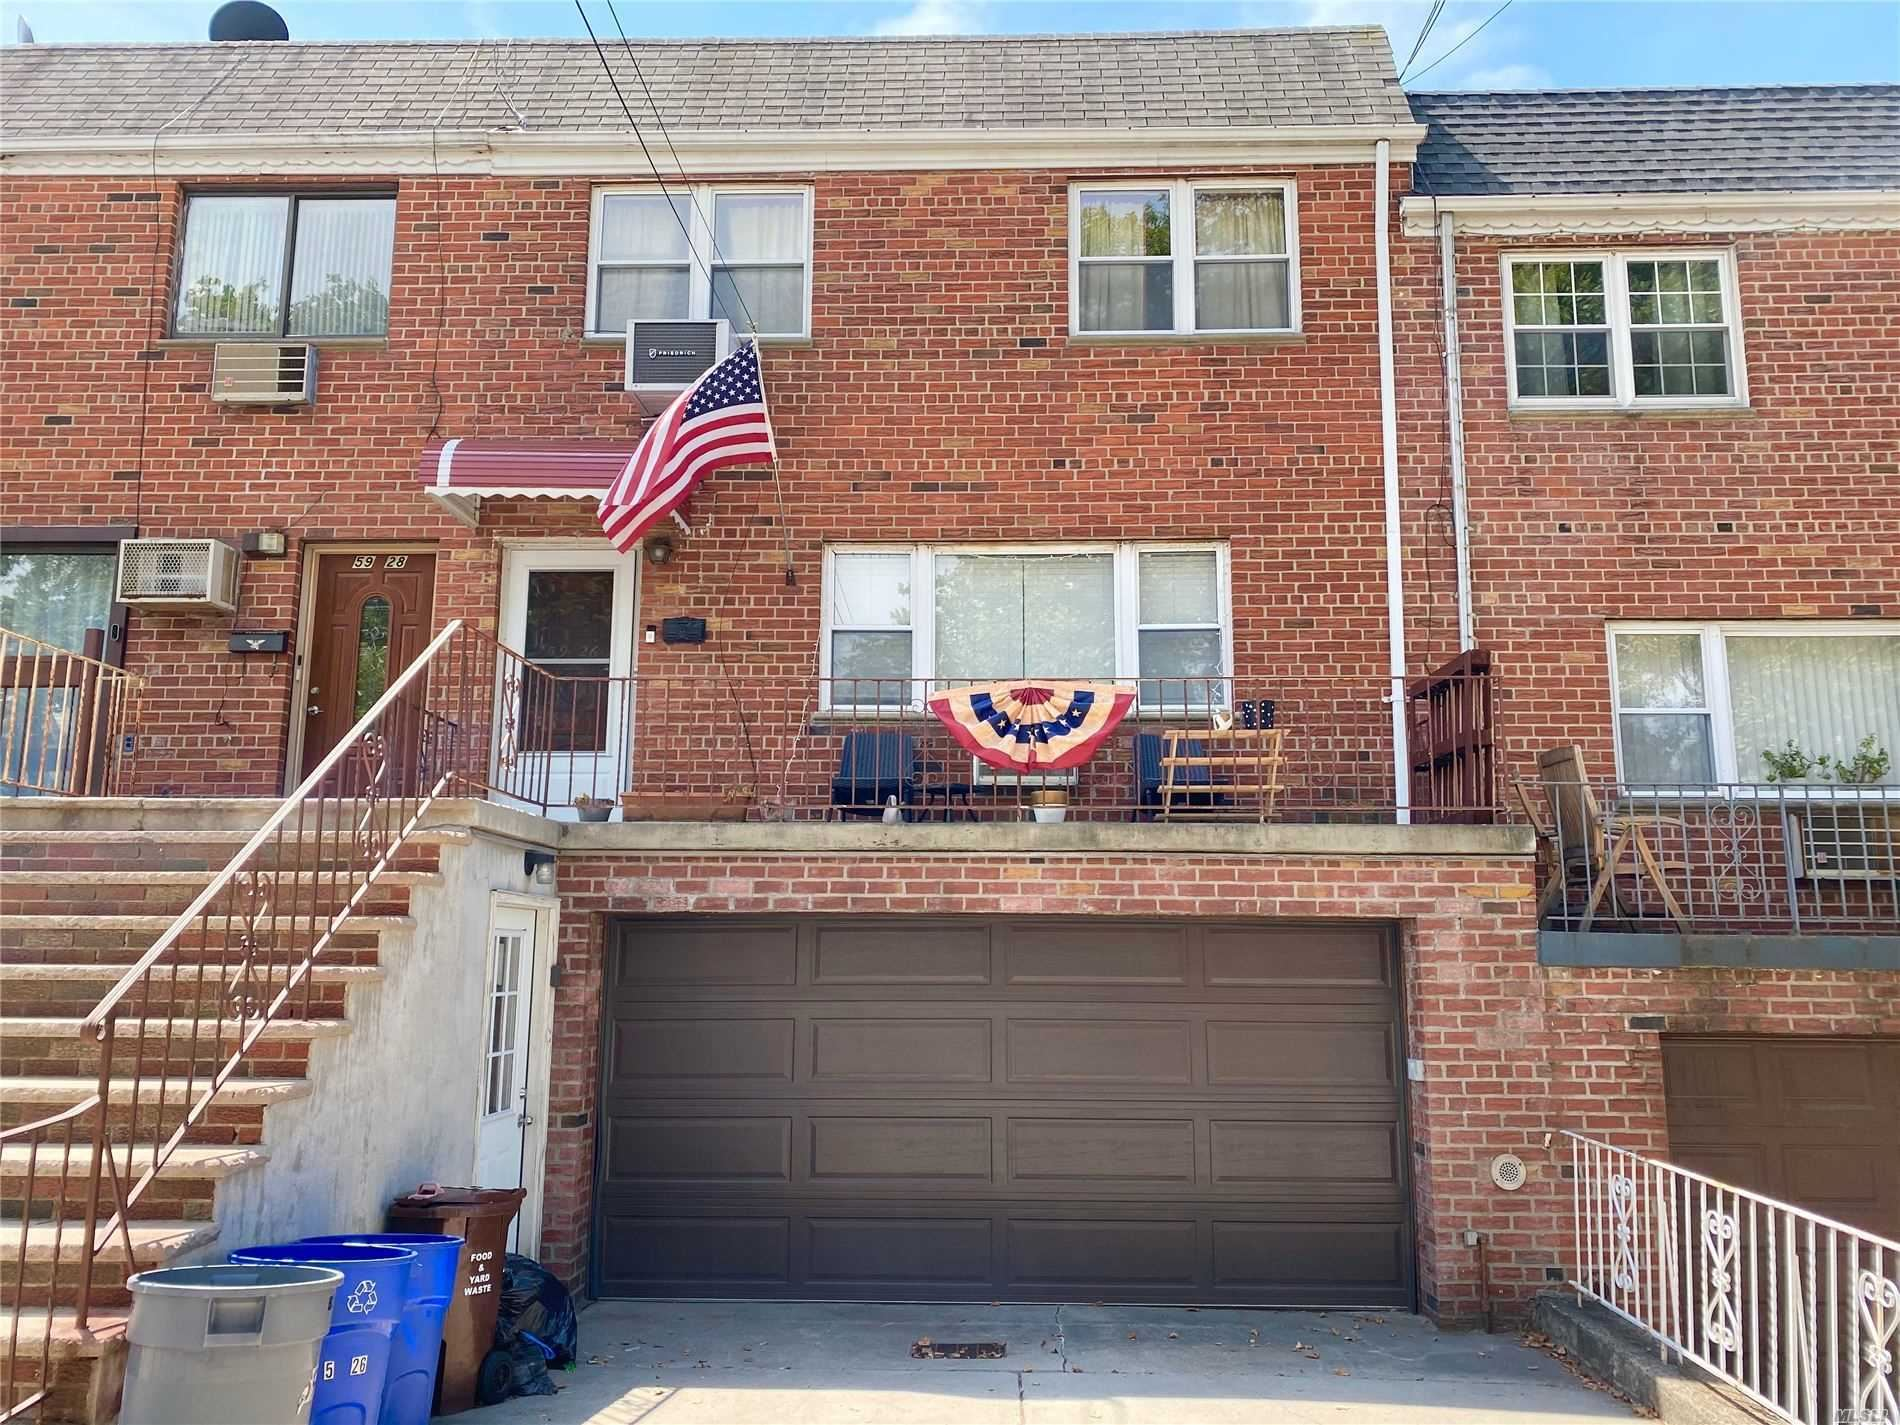 59-26 57th Dr, Maspeth, NY 11378 - MLS#: 3238702